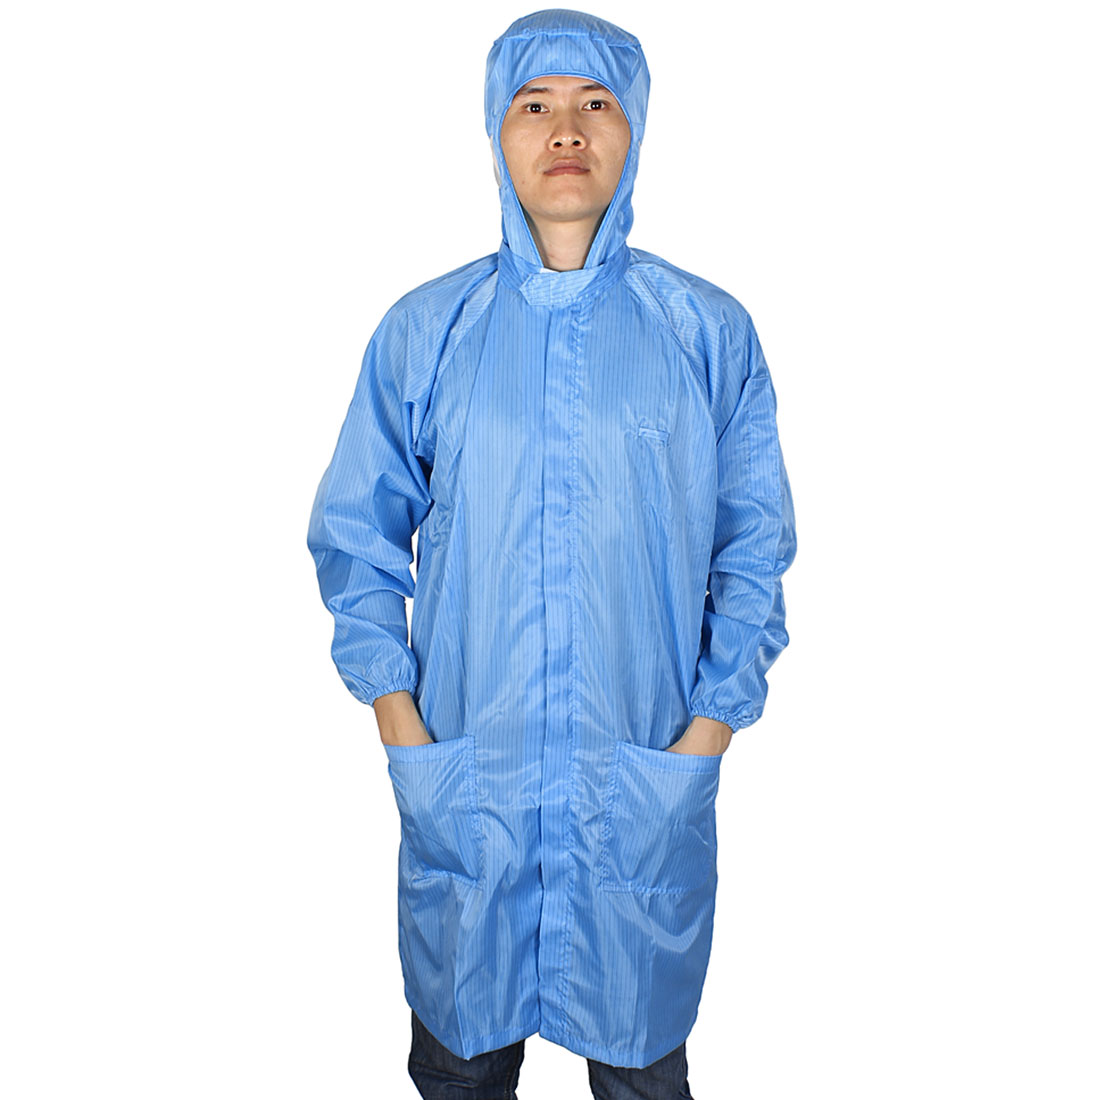 L Blue ESD Lab Zip Up Hooded Anti Static Coat Overalls Uniform for Women Men